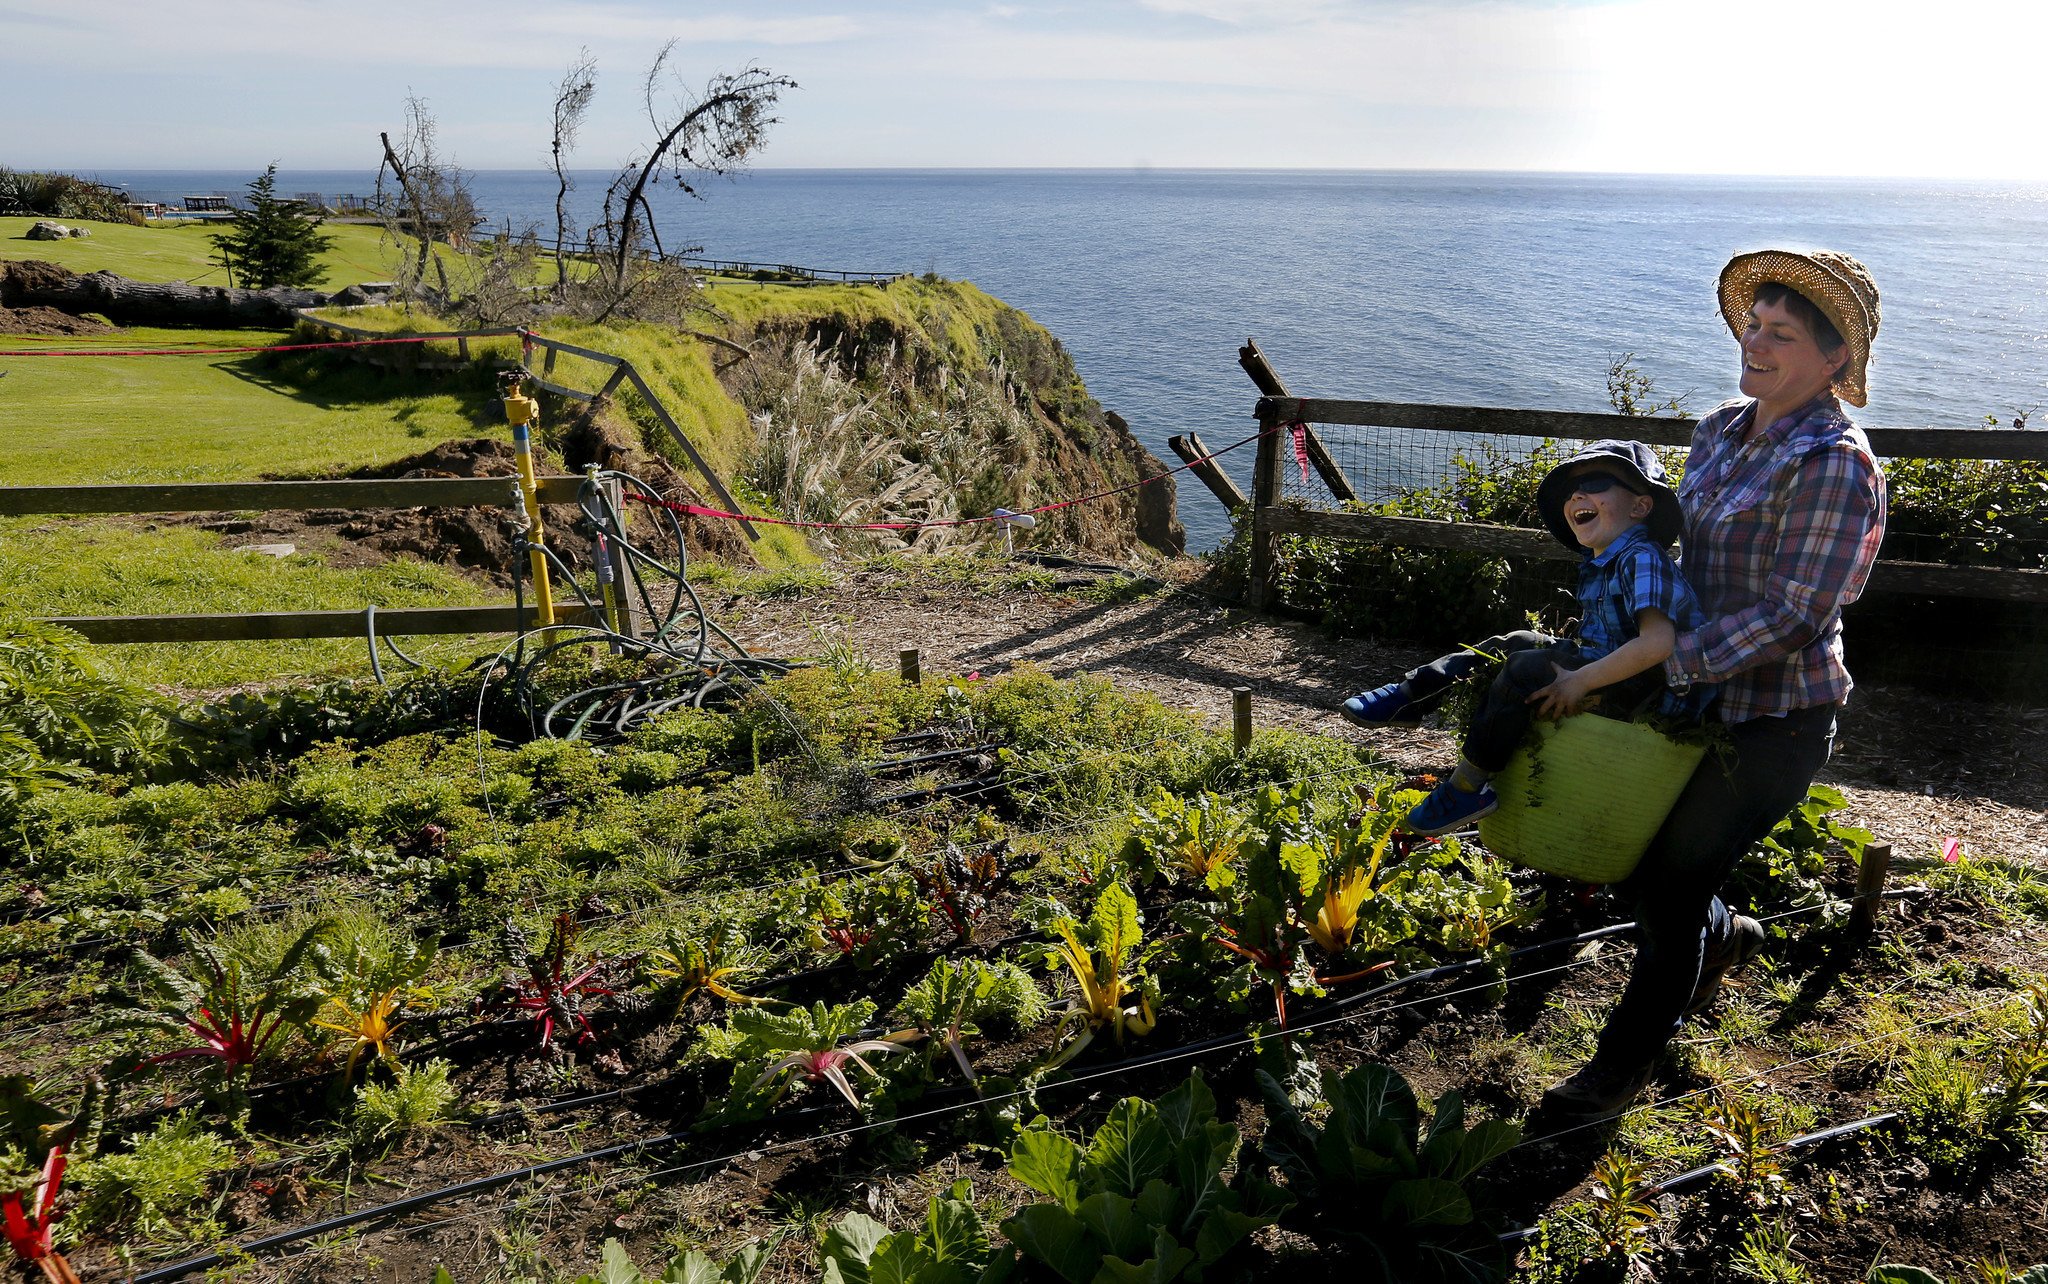 In the absence of visitors to Esalen, Verity Howe, 39, helps tend the center's community garden with her son, Calder, 4. Howe is married to the retreat's gardener.